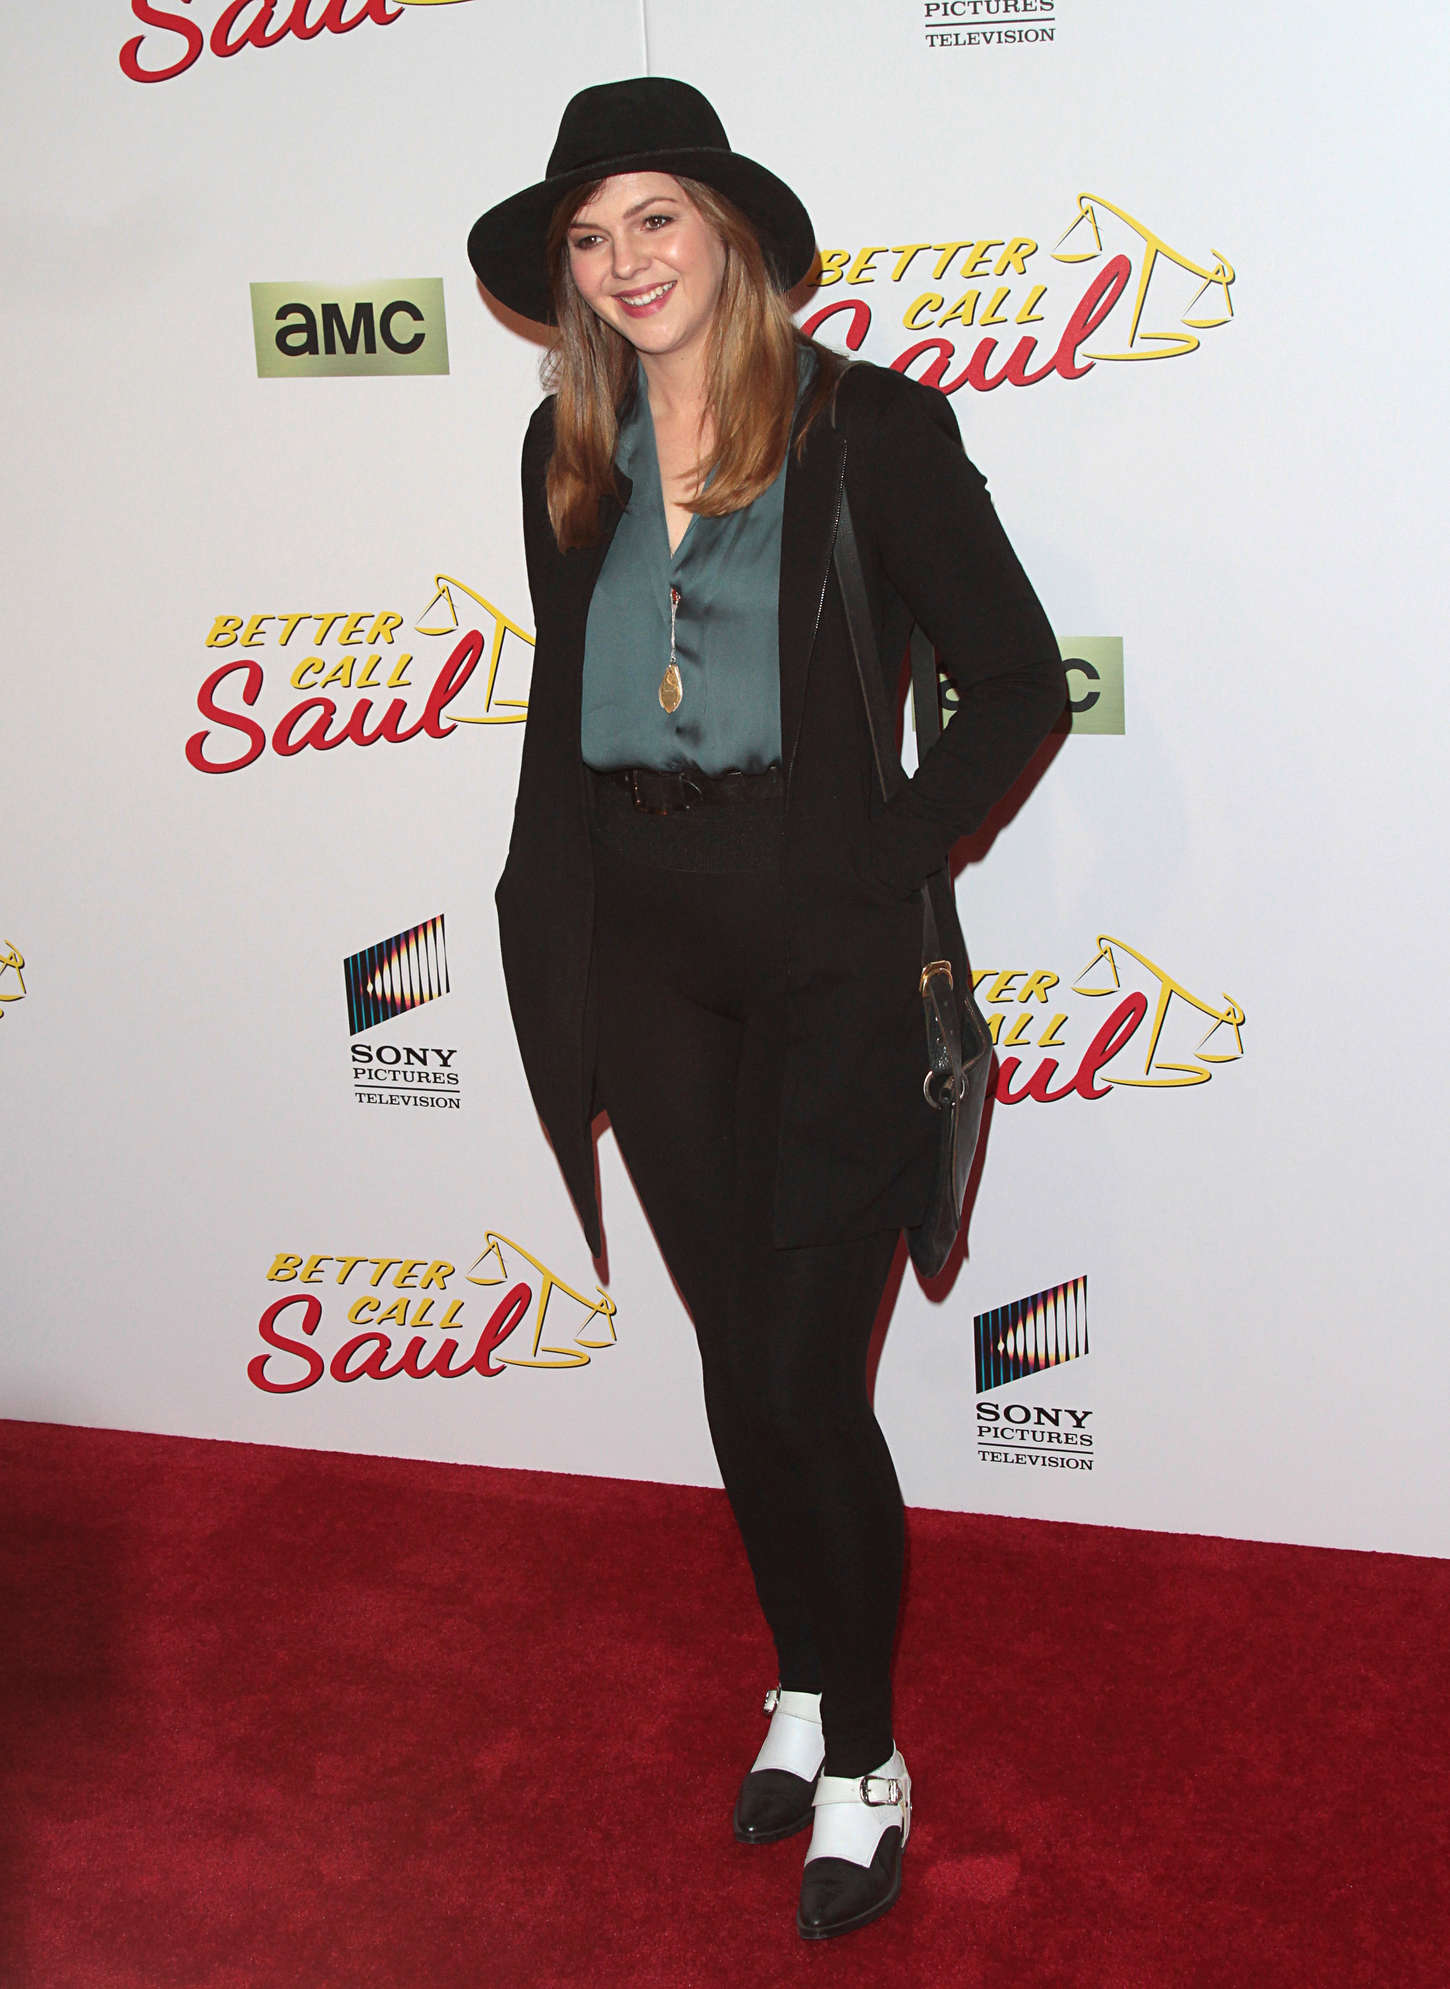 Amber Tamblyn Better Call Saul Premiere in Los Angeles